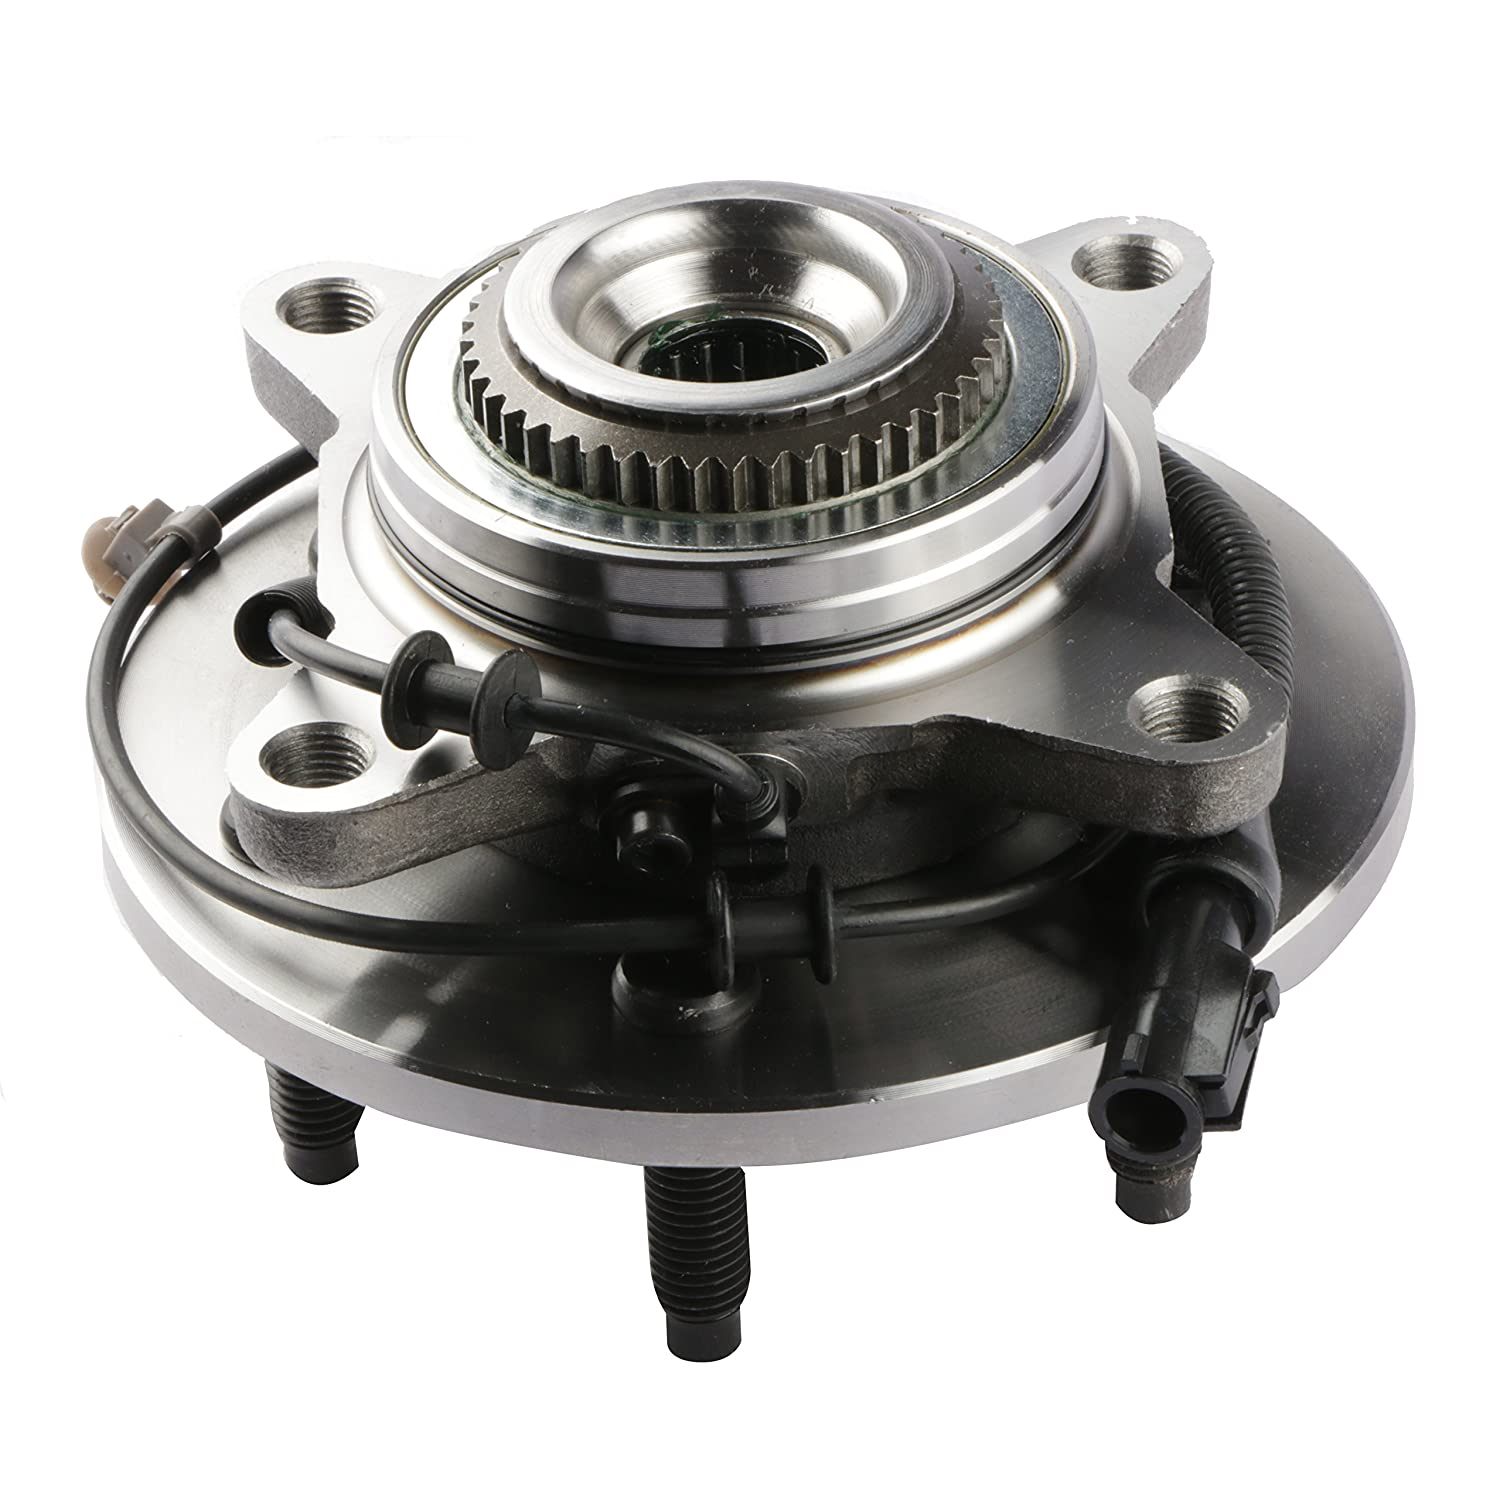 Set of 2 Sierra Savana Yukon Express MOSTPLUS Wheel Bearing Hub Front Assembly for Escalade 2000-07 GMC//Chevy Only for 4WD With ABS 6 Lug 515036X2